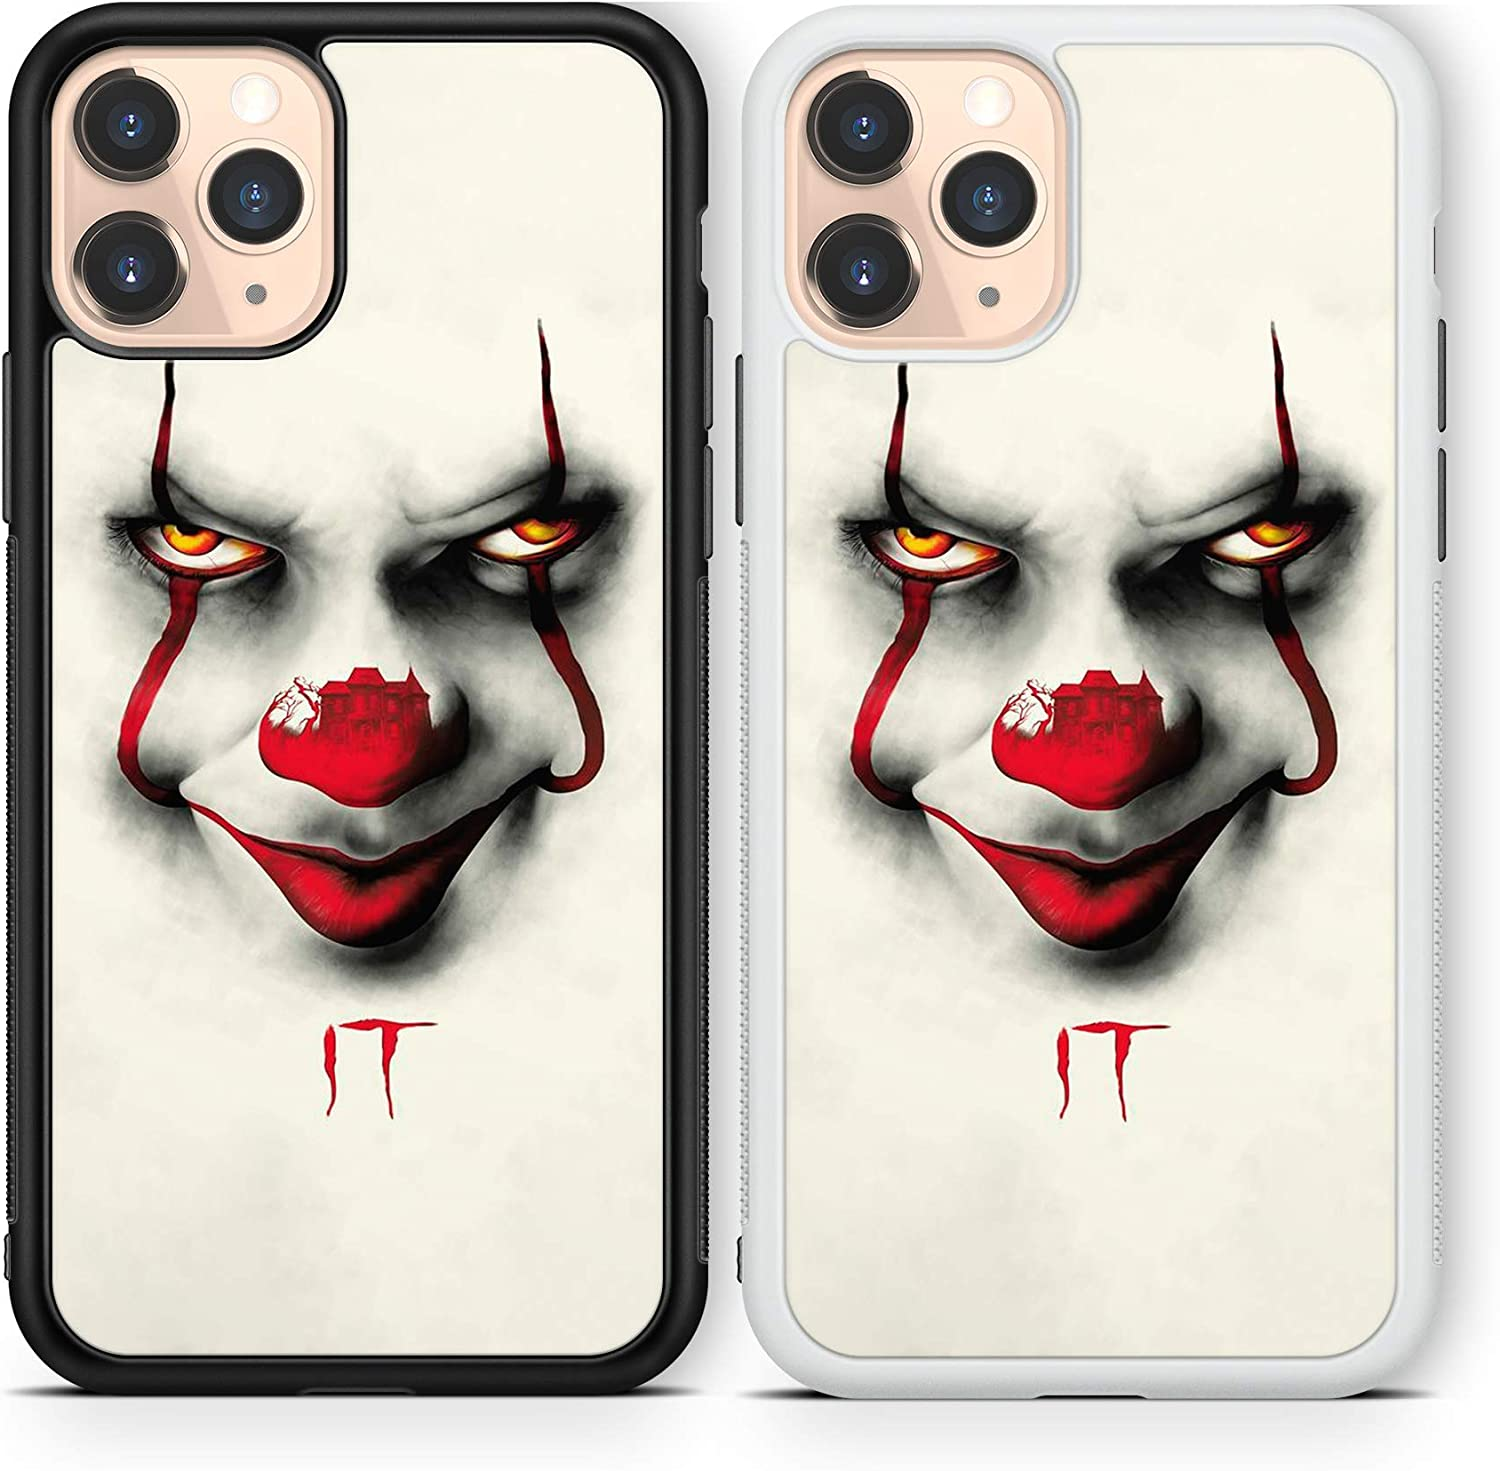 Halloween Scary case Compatible with iPhone 12 pro max Mini 11 XR X 7 8 SE Galaxy S20 Ultra S10 Note 10 20 TPU Cover SN187 (White, for iPhone 12 Pro max)